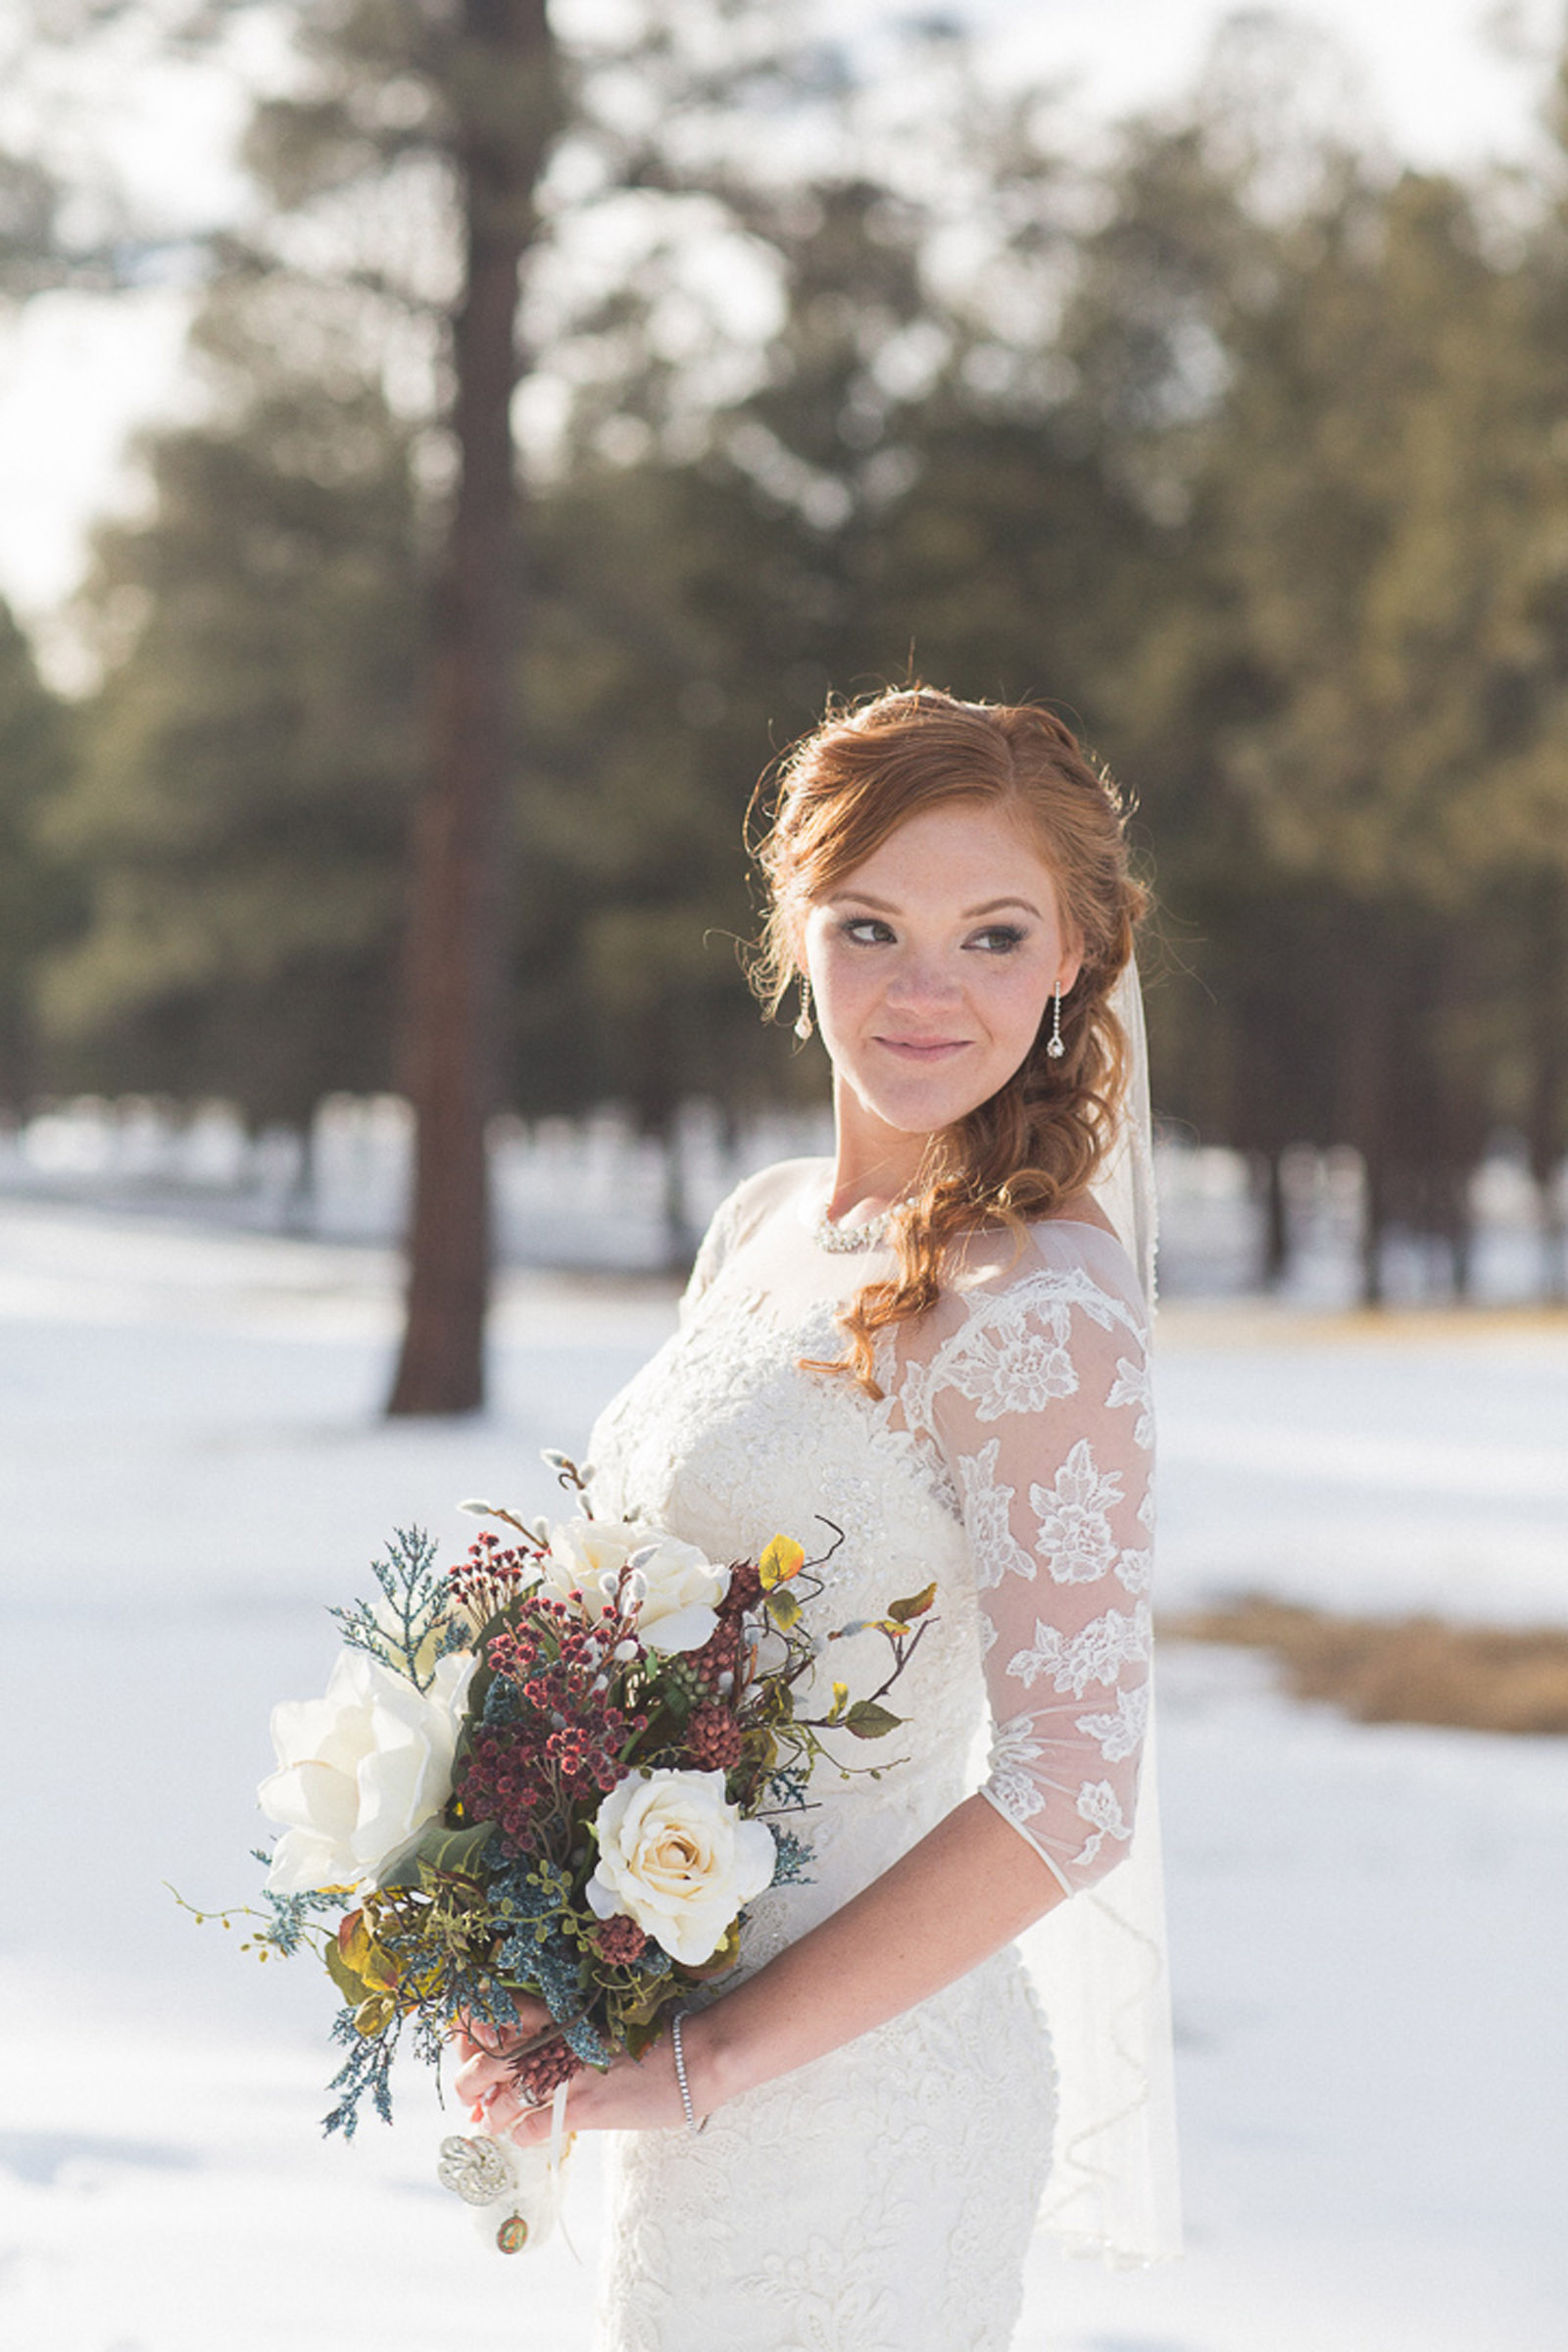 155-wedding-photographer-captures-newlyweds-in-snow-during-a-winter-snow-wedding-in-the-mountains-in-colorado